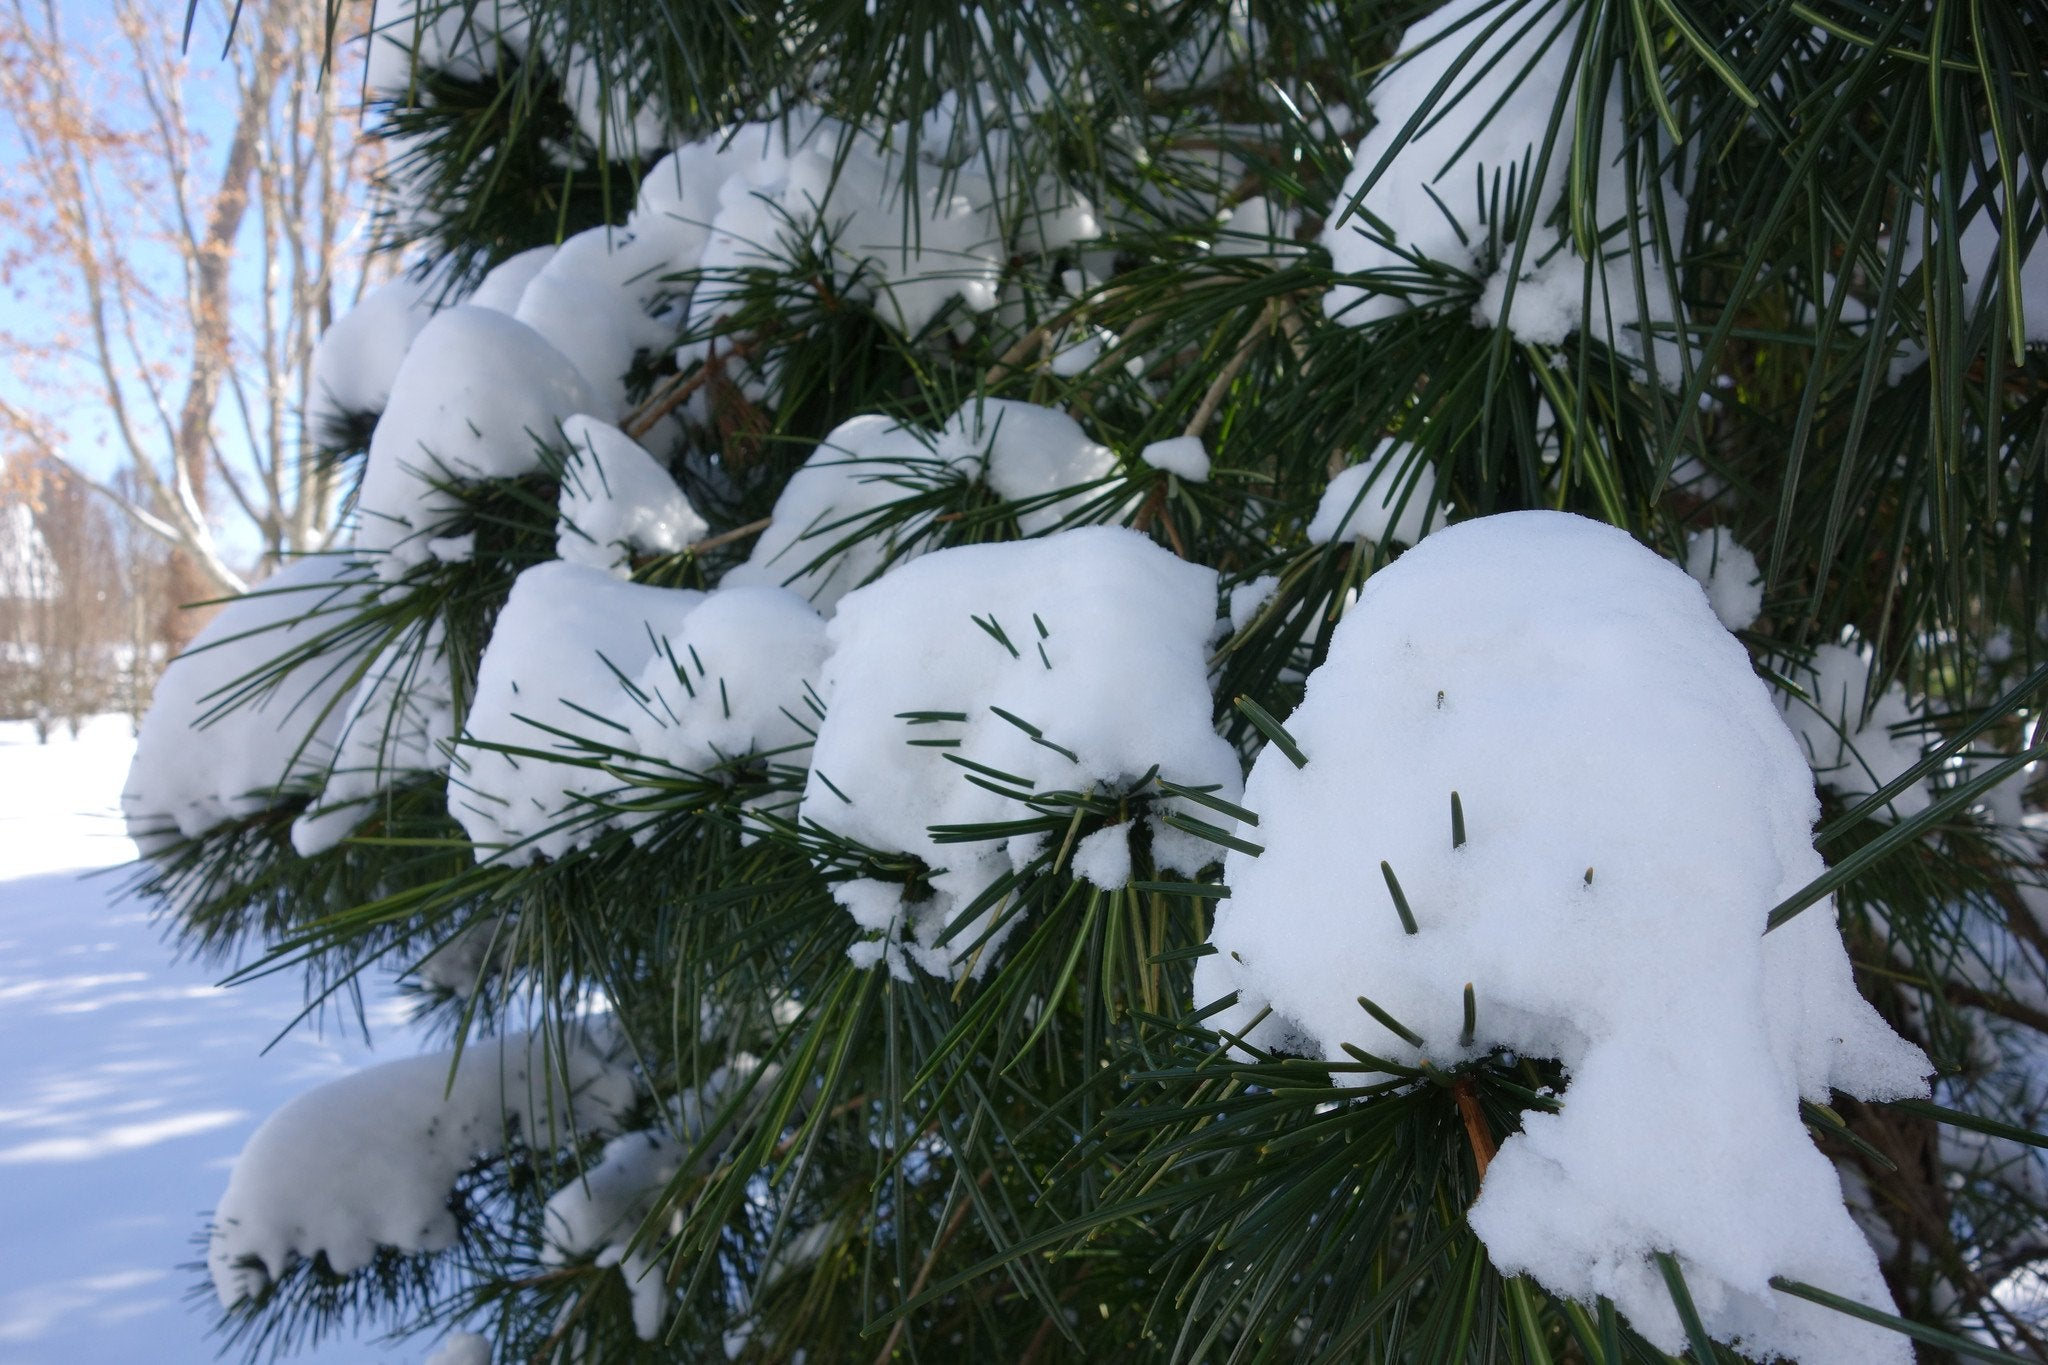 From Cryptomeria to Specimen Spruces: A Winter Walk at LongHouse